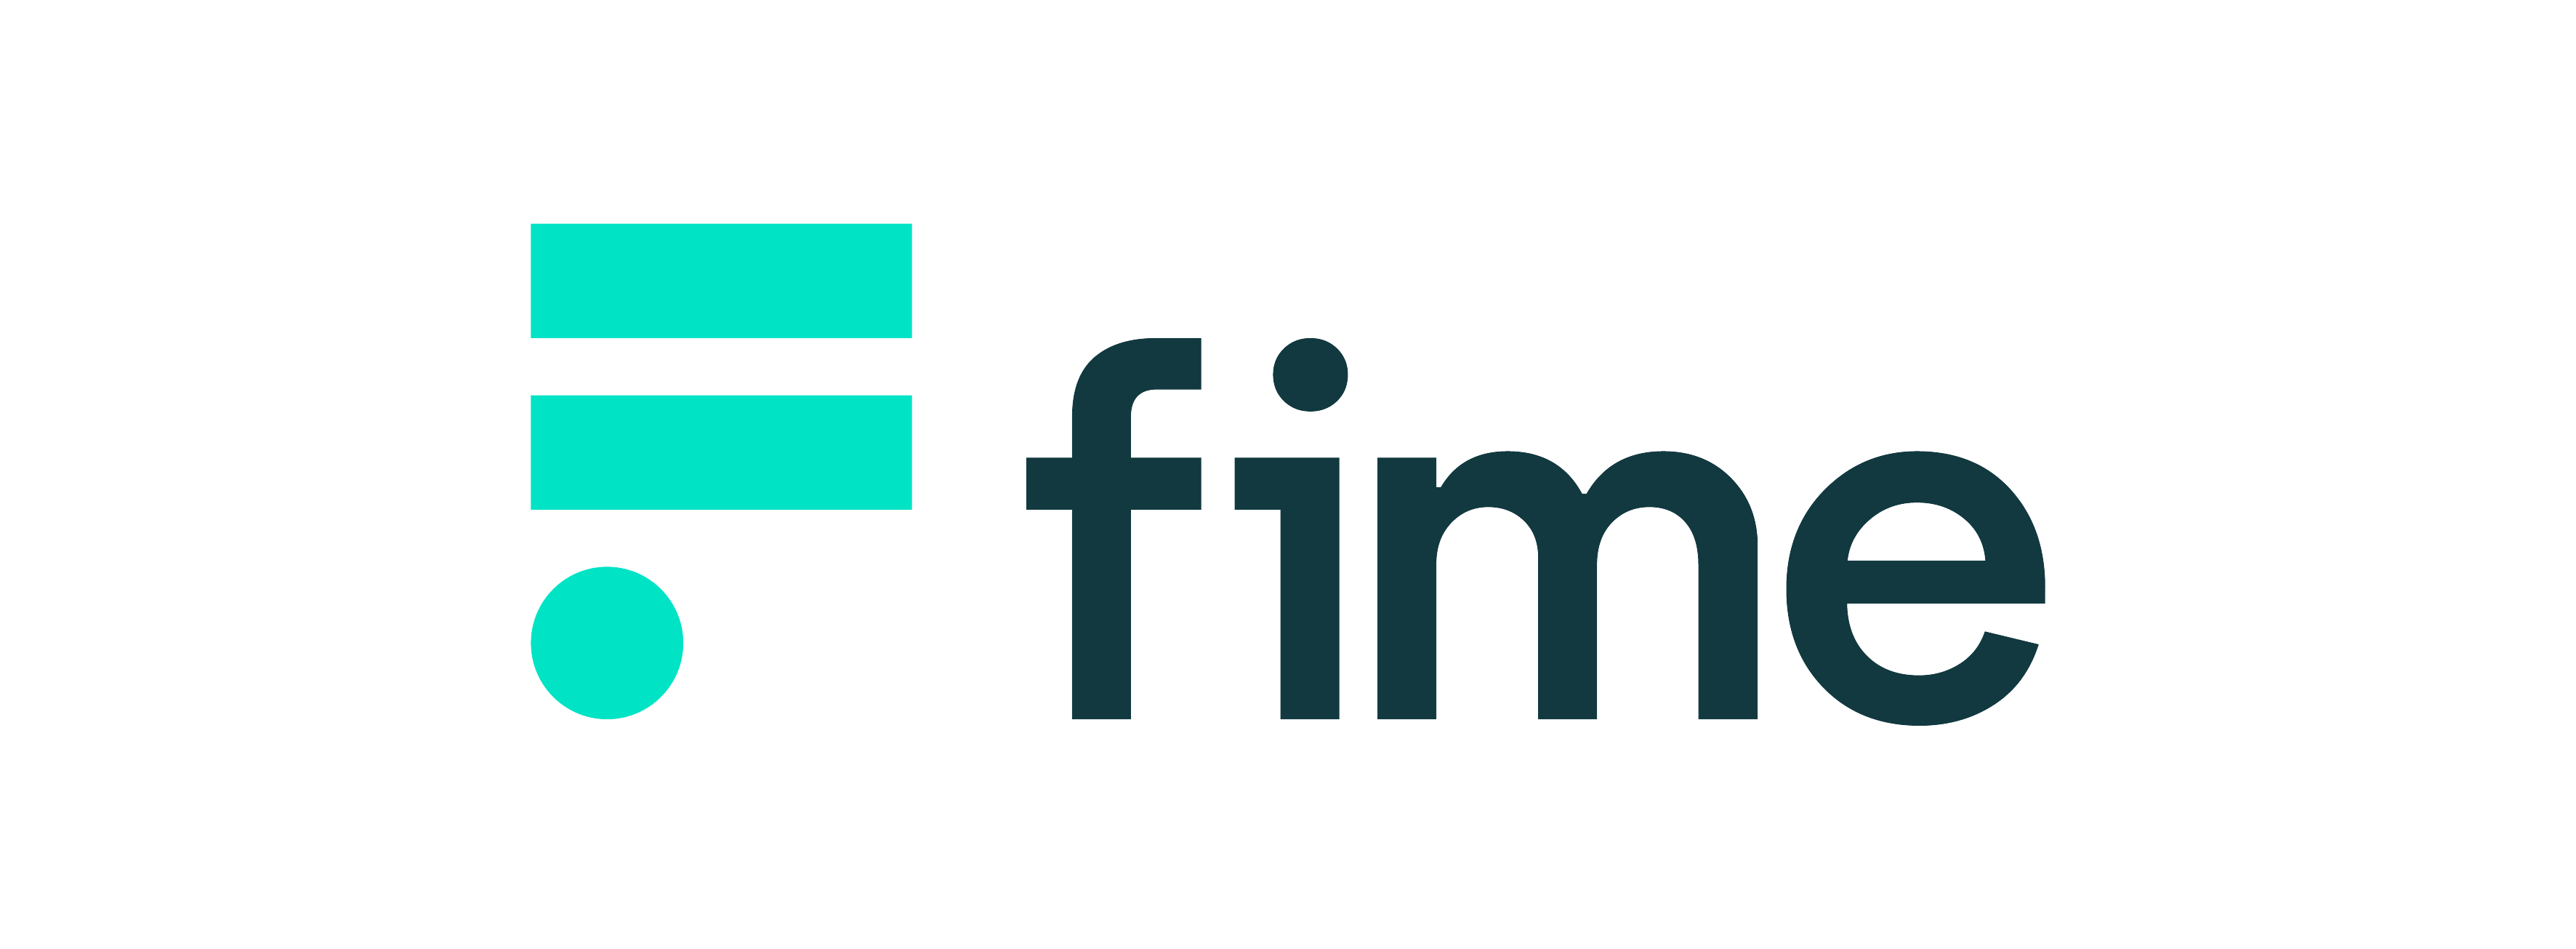 Fime Launches the First EMV(R) Level 1 Certification Services in India